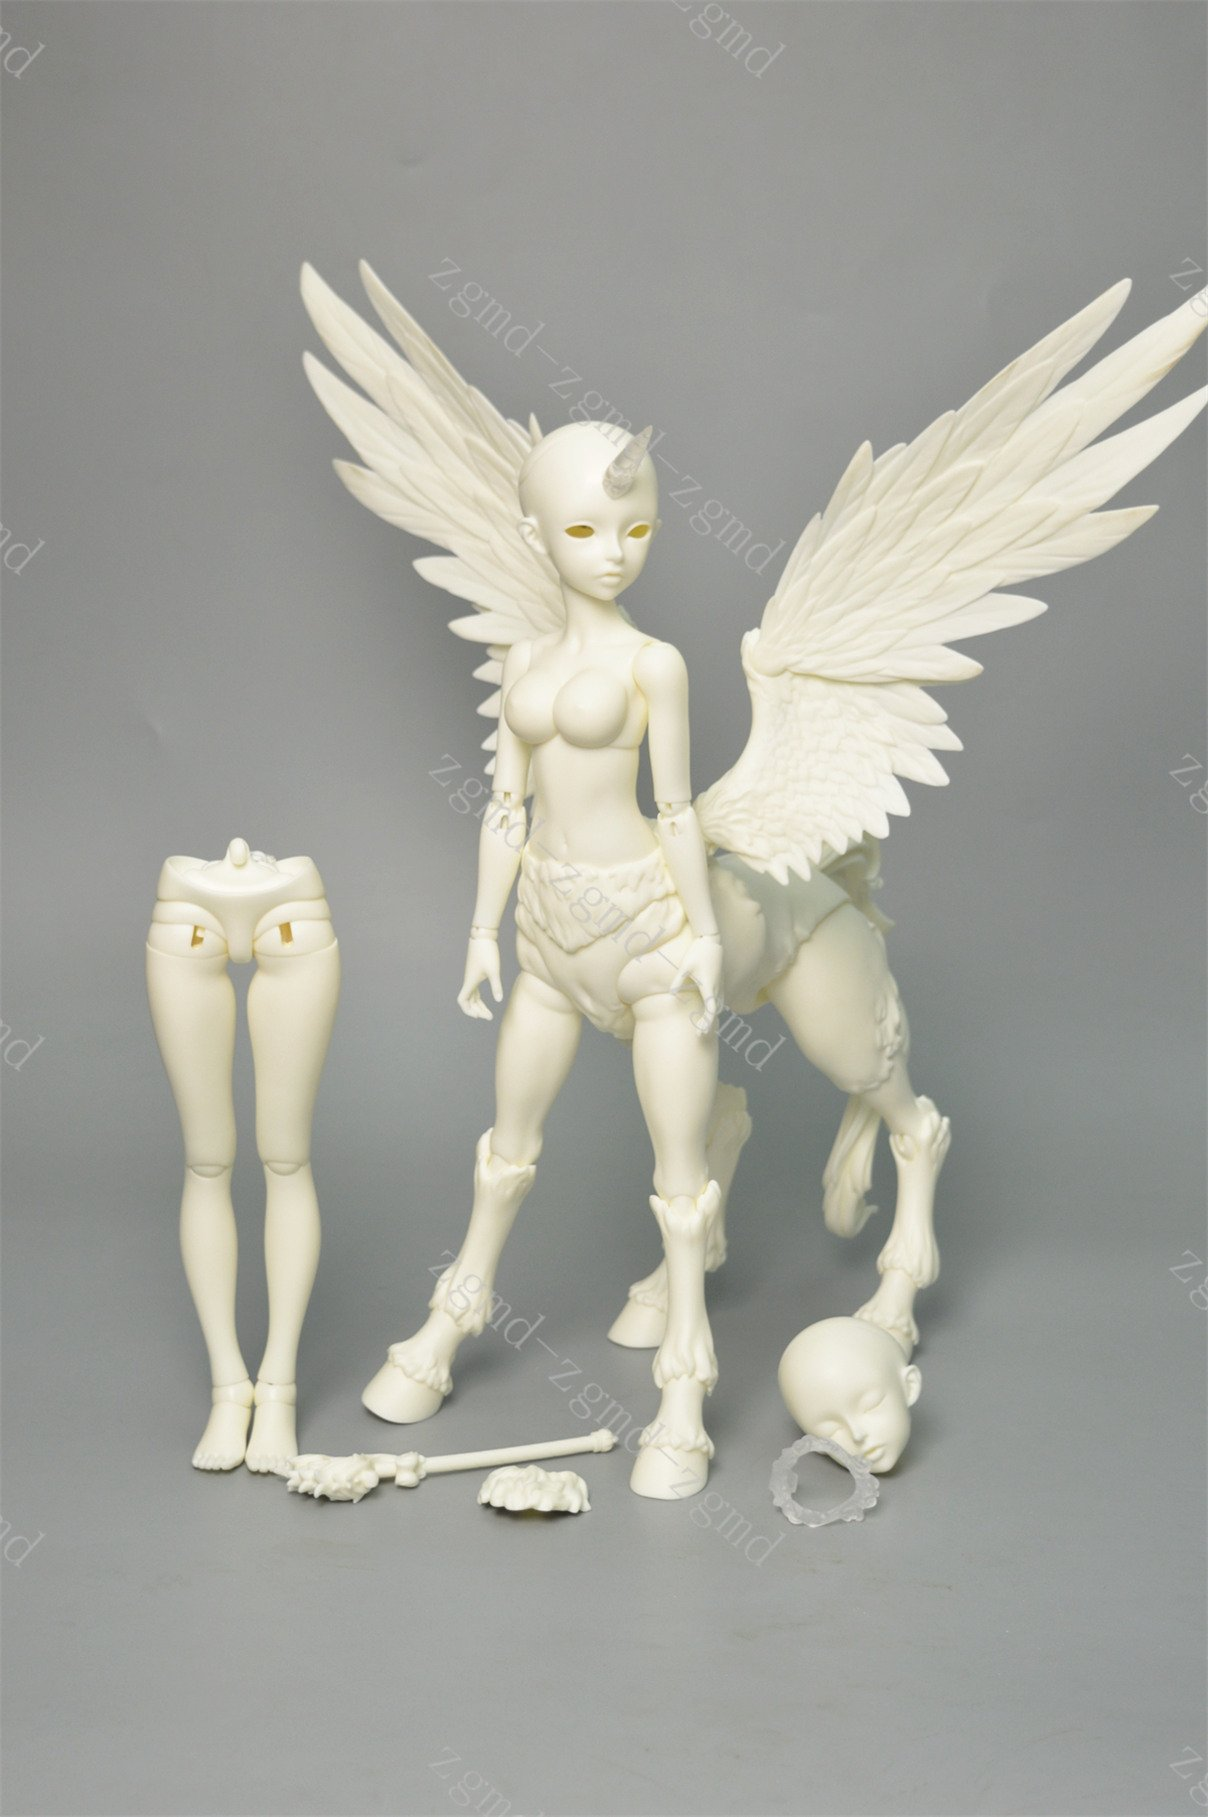 Zgmd 1/4 BJD doll SD White skin flying horse without make-up body of custom and the doll